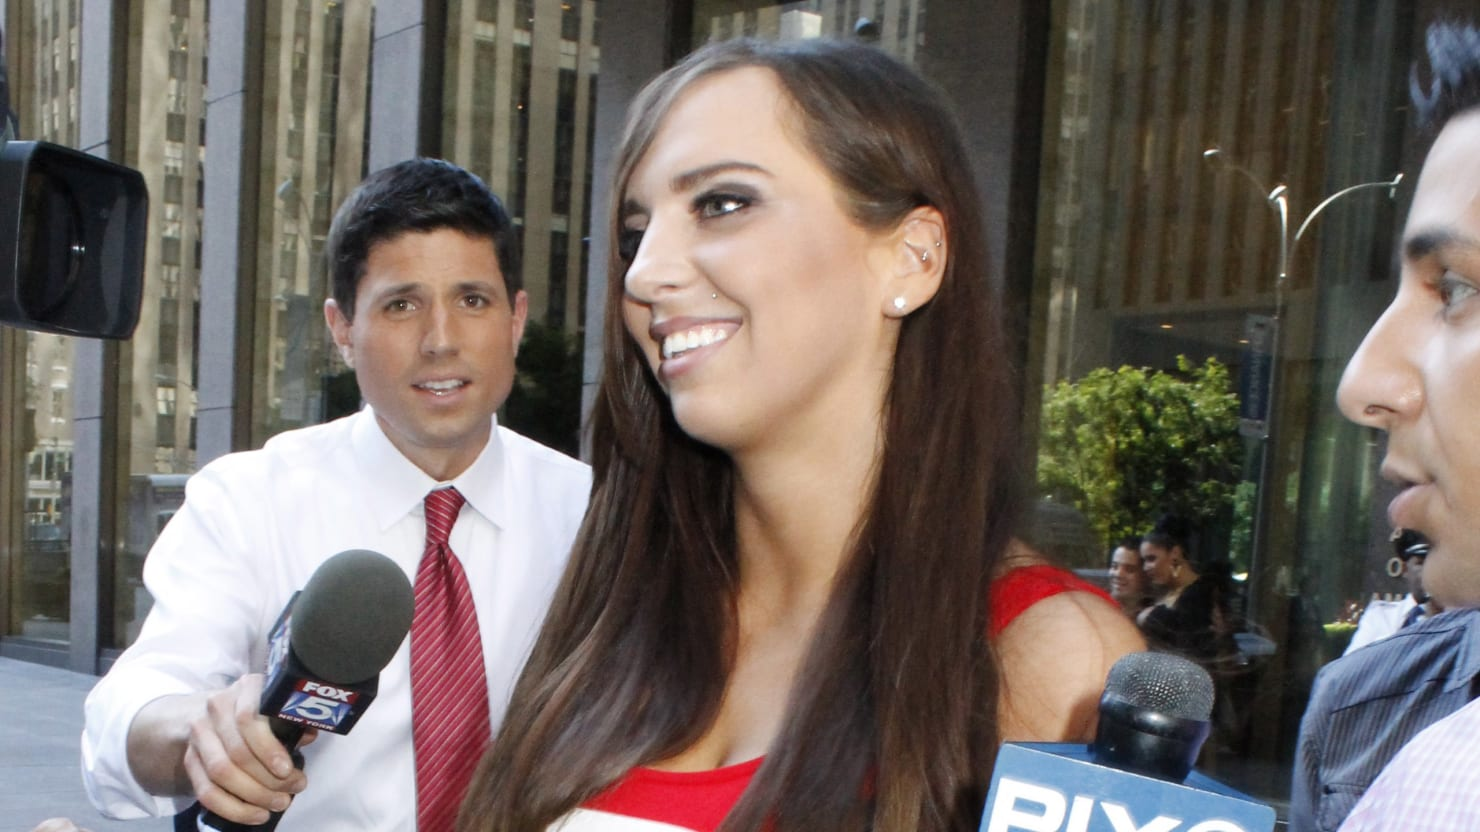 An Open Letter to Sydney Leathers: Please Don't Do Porn